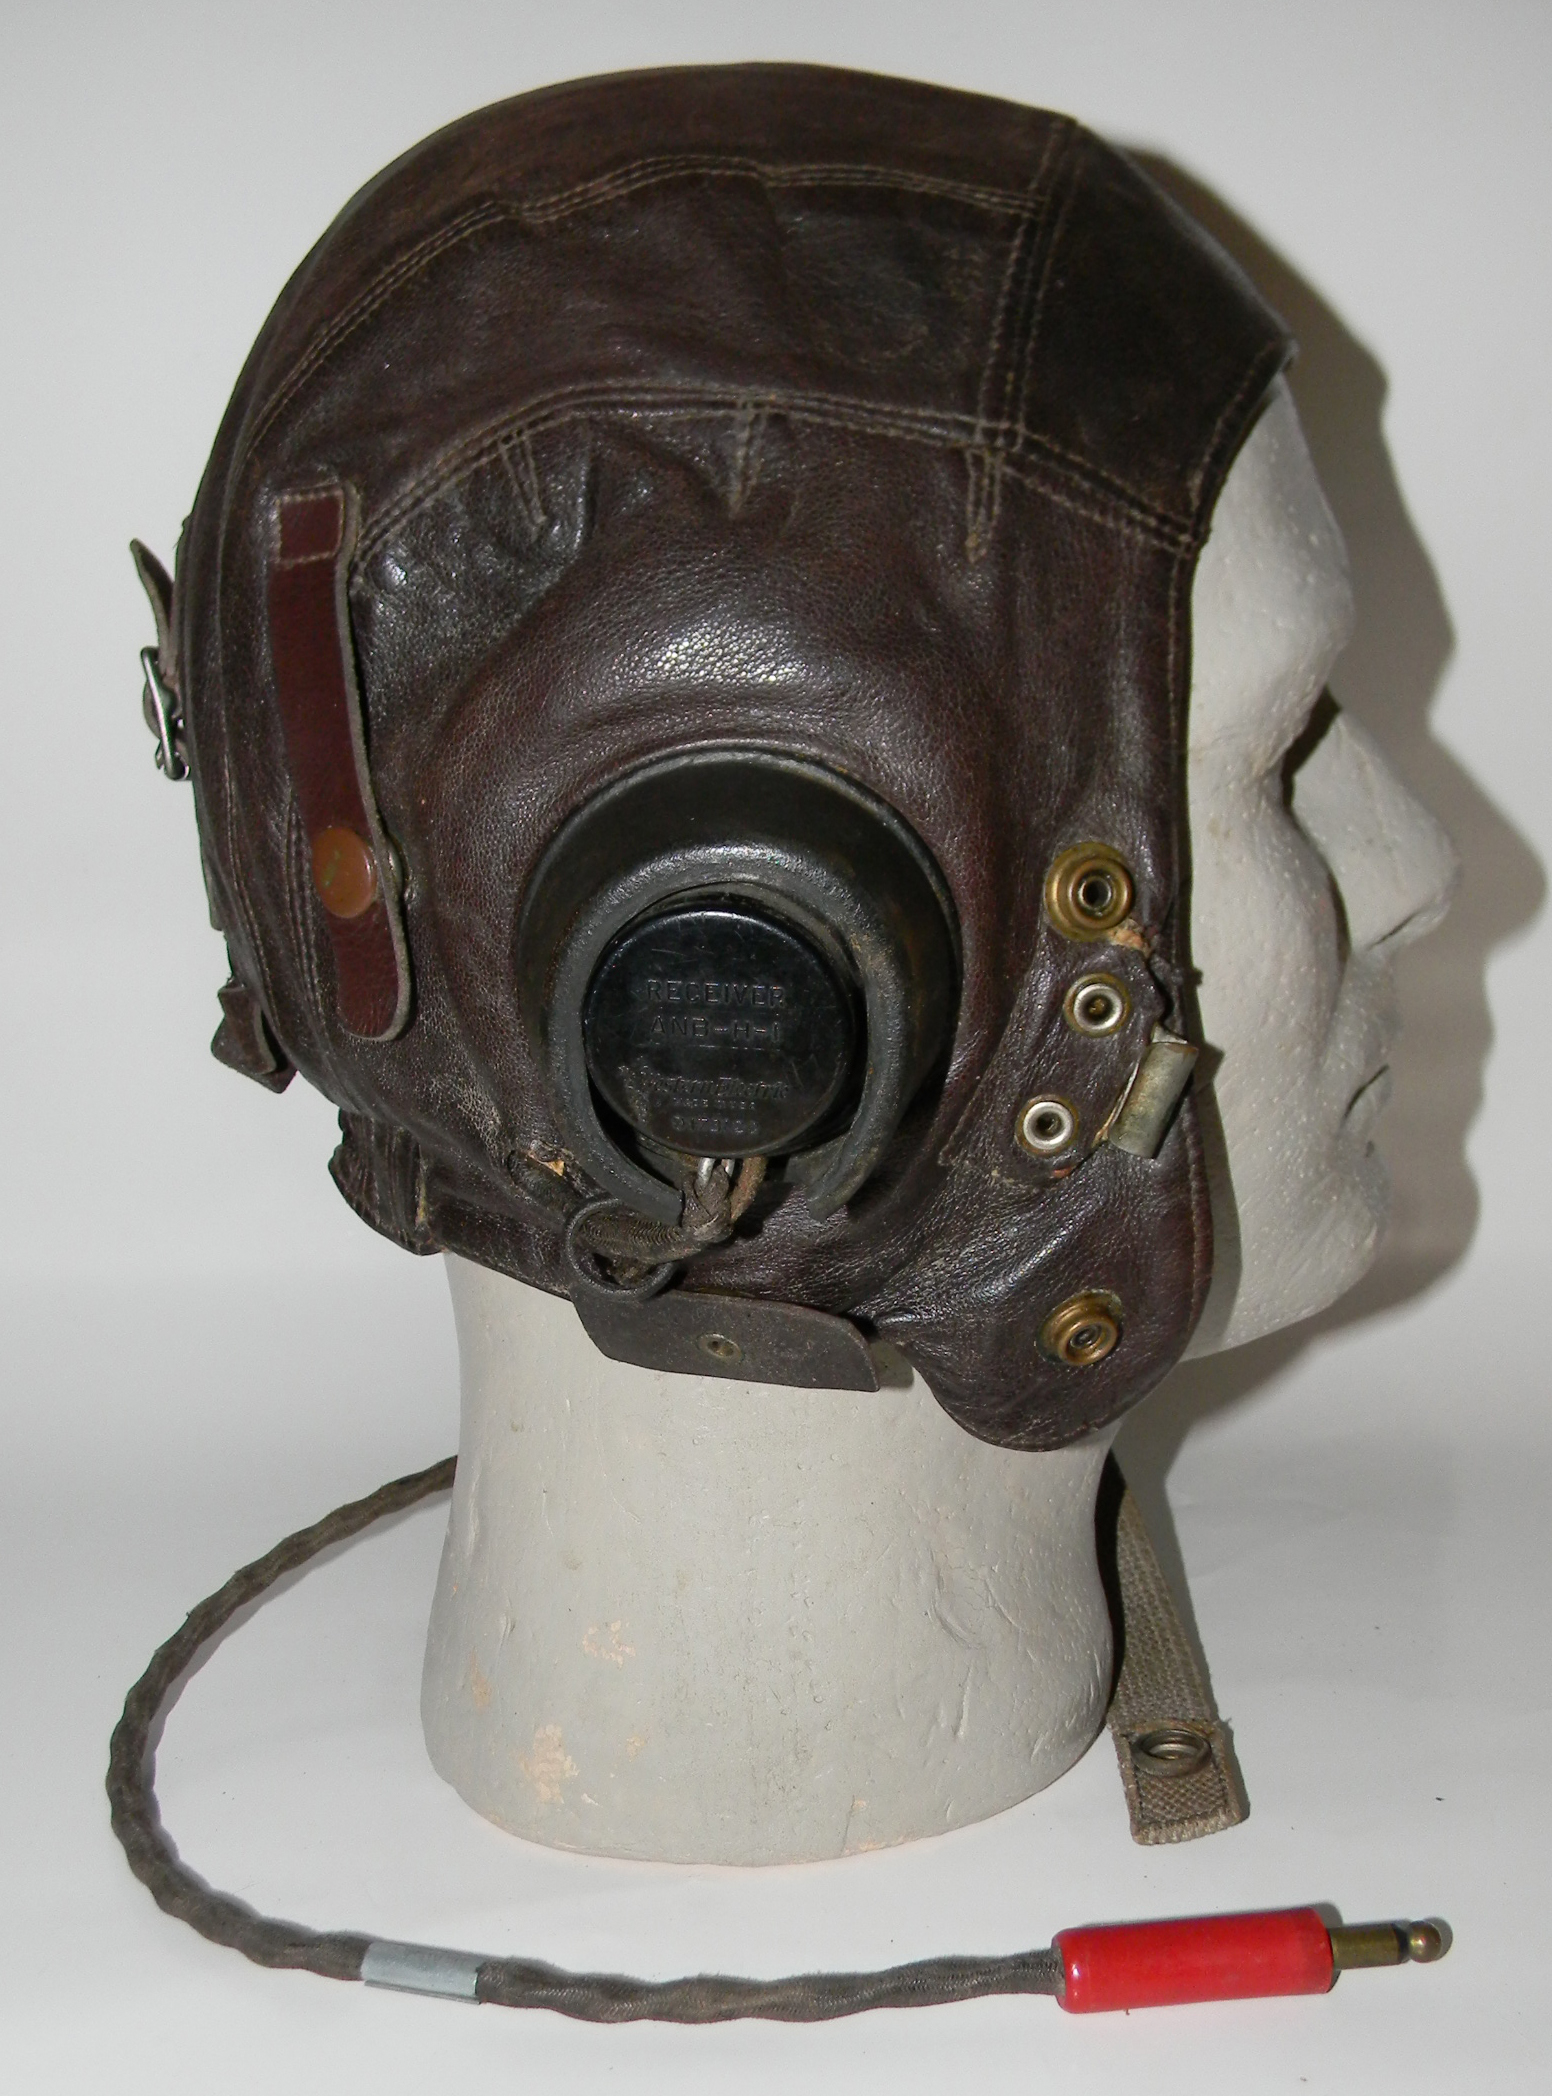 Type C helmet with ANB-H-1 receivers